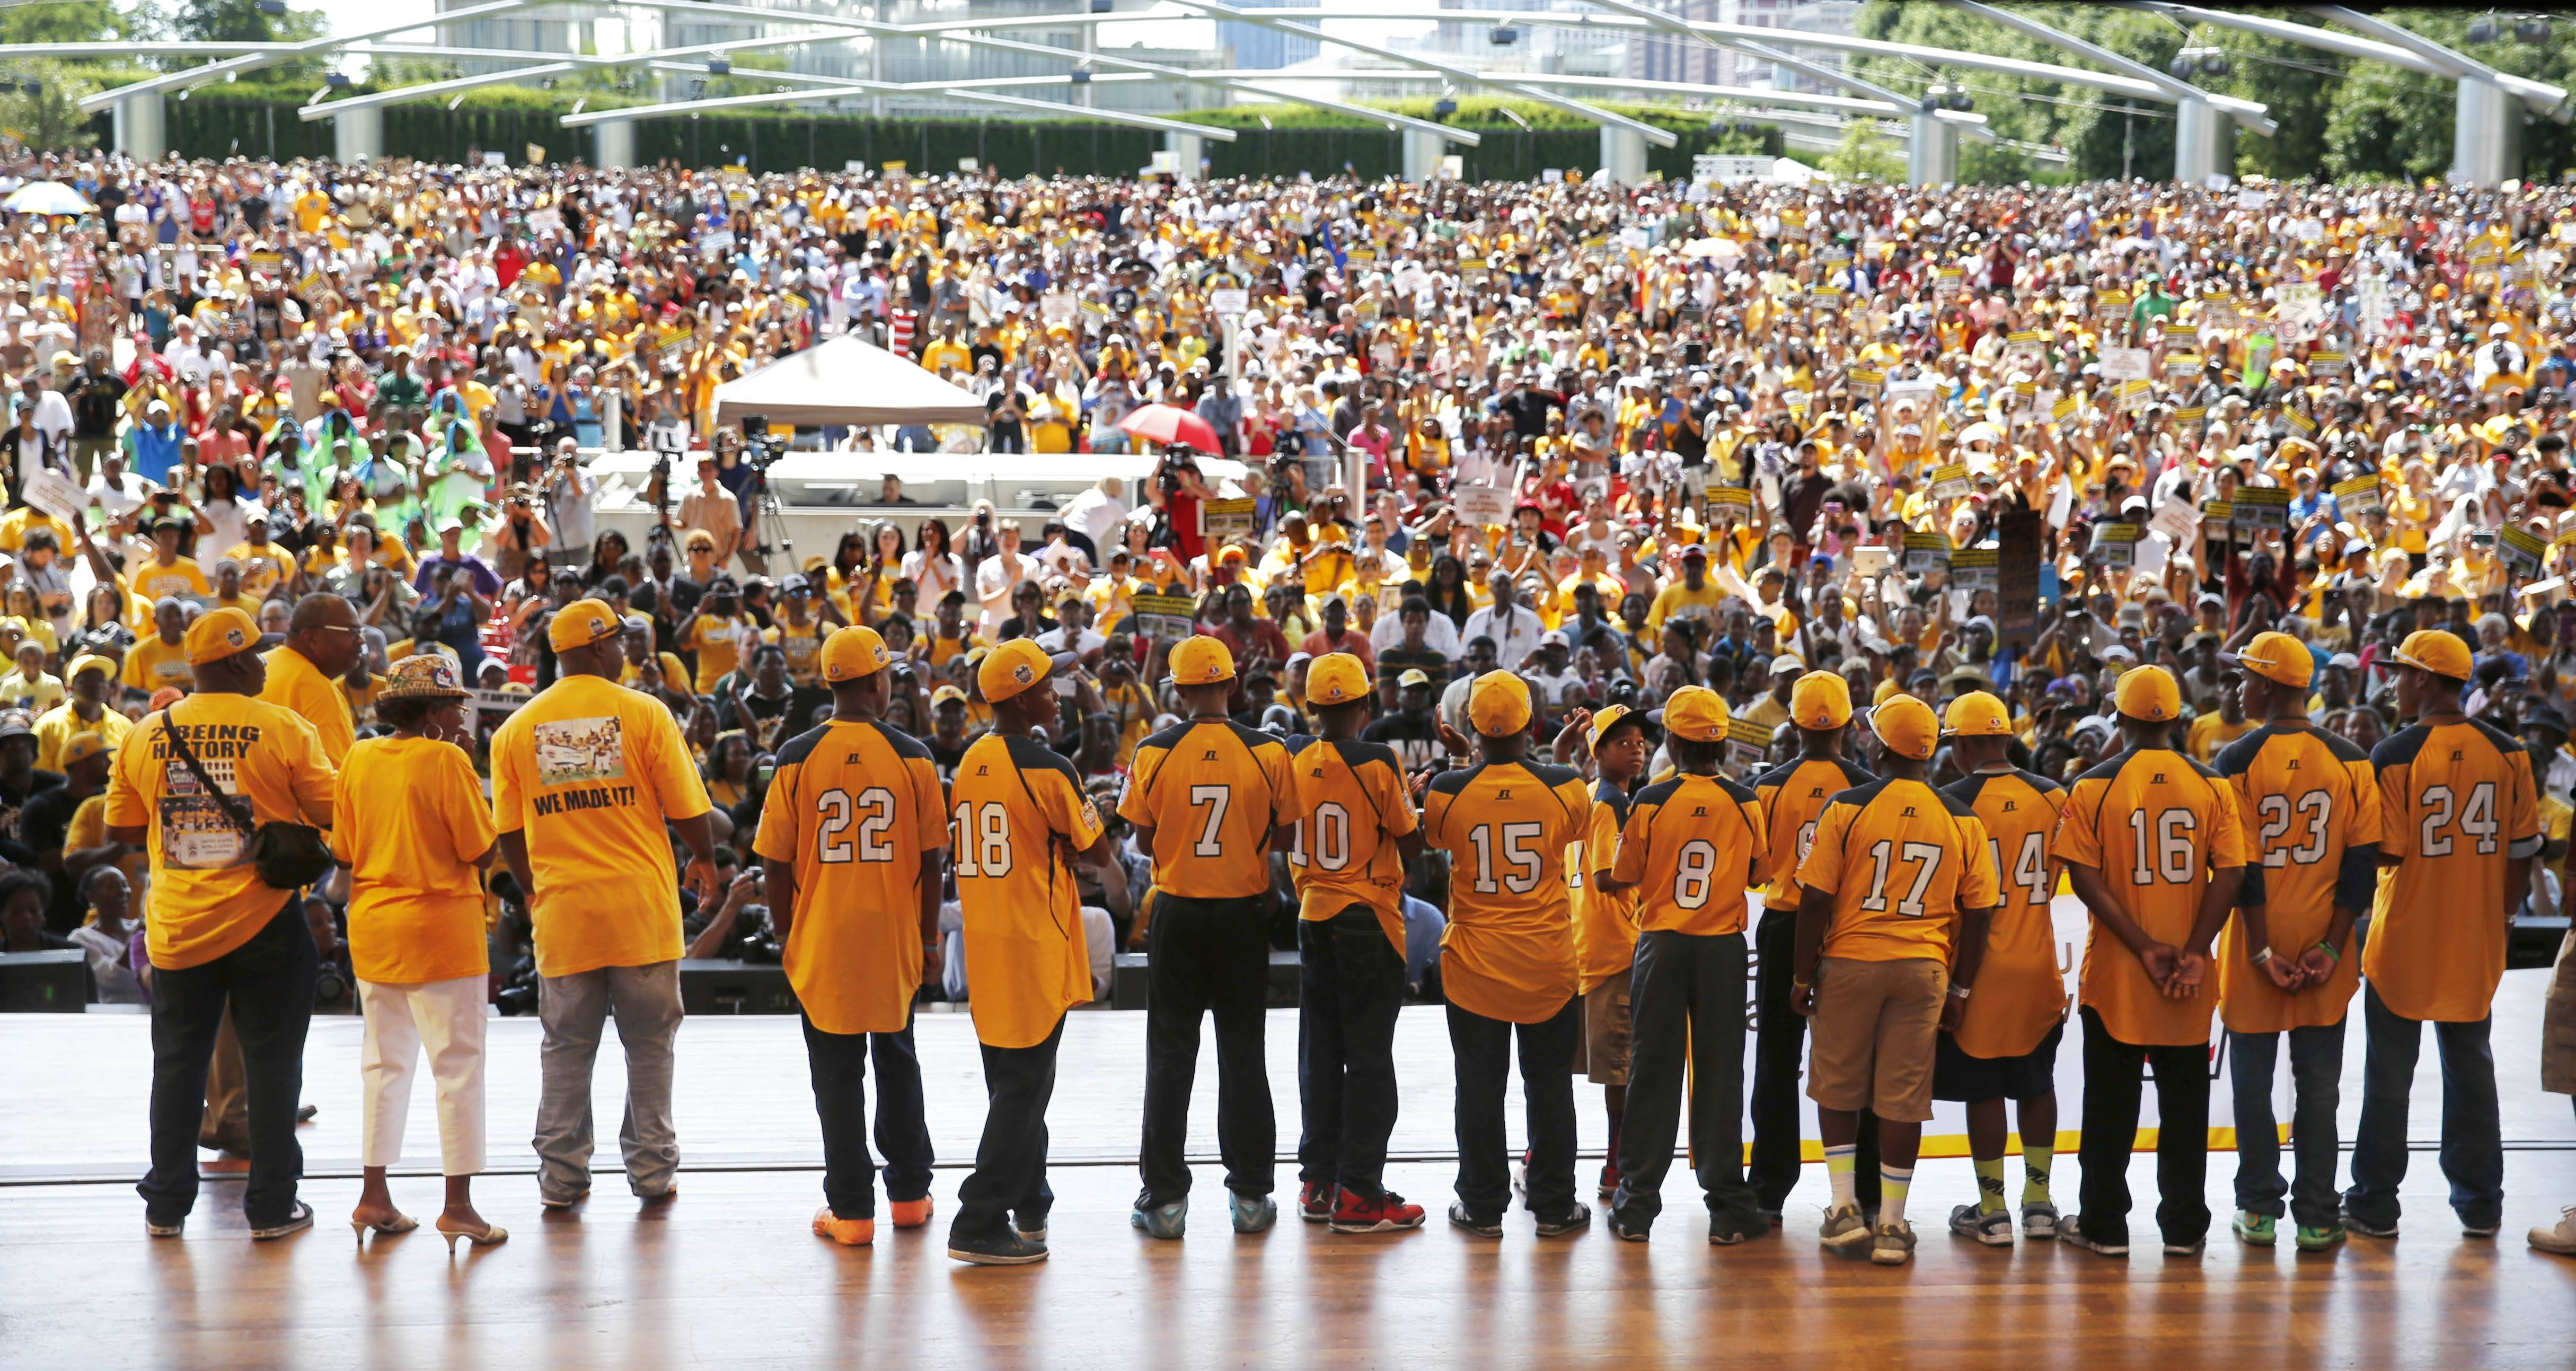 Members of the Jackie Robinson West All Stars Little League Baseball team participate in a rally celebrating the team's U.S. Little League Championship Wednesday at Chicago's Millennium Park.